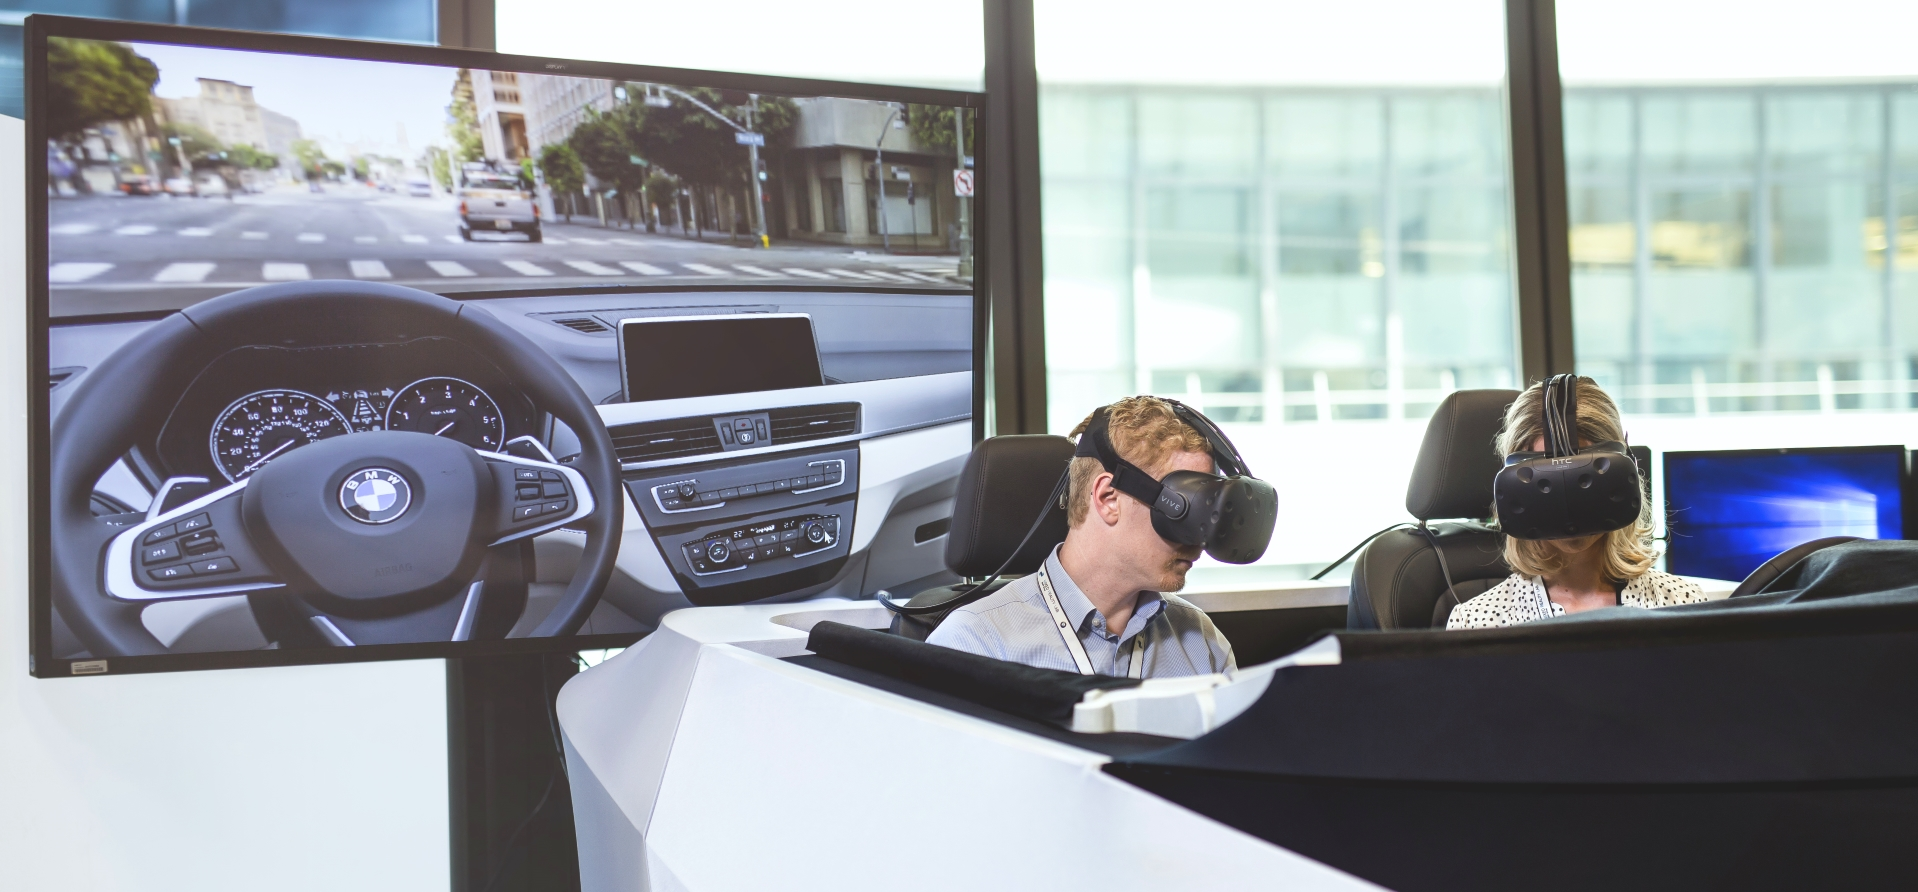 BMW Accelerates VR Usage with HTC Vive